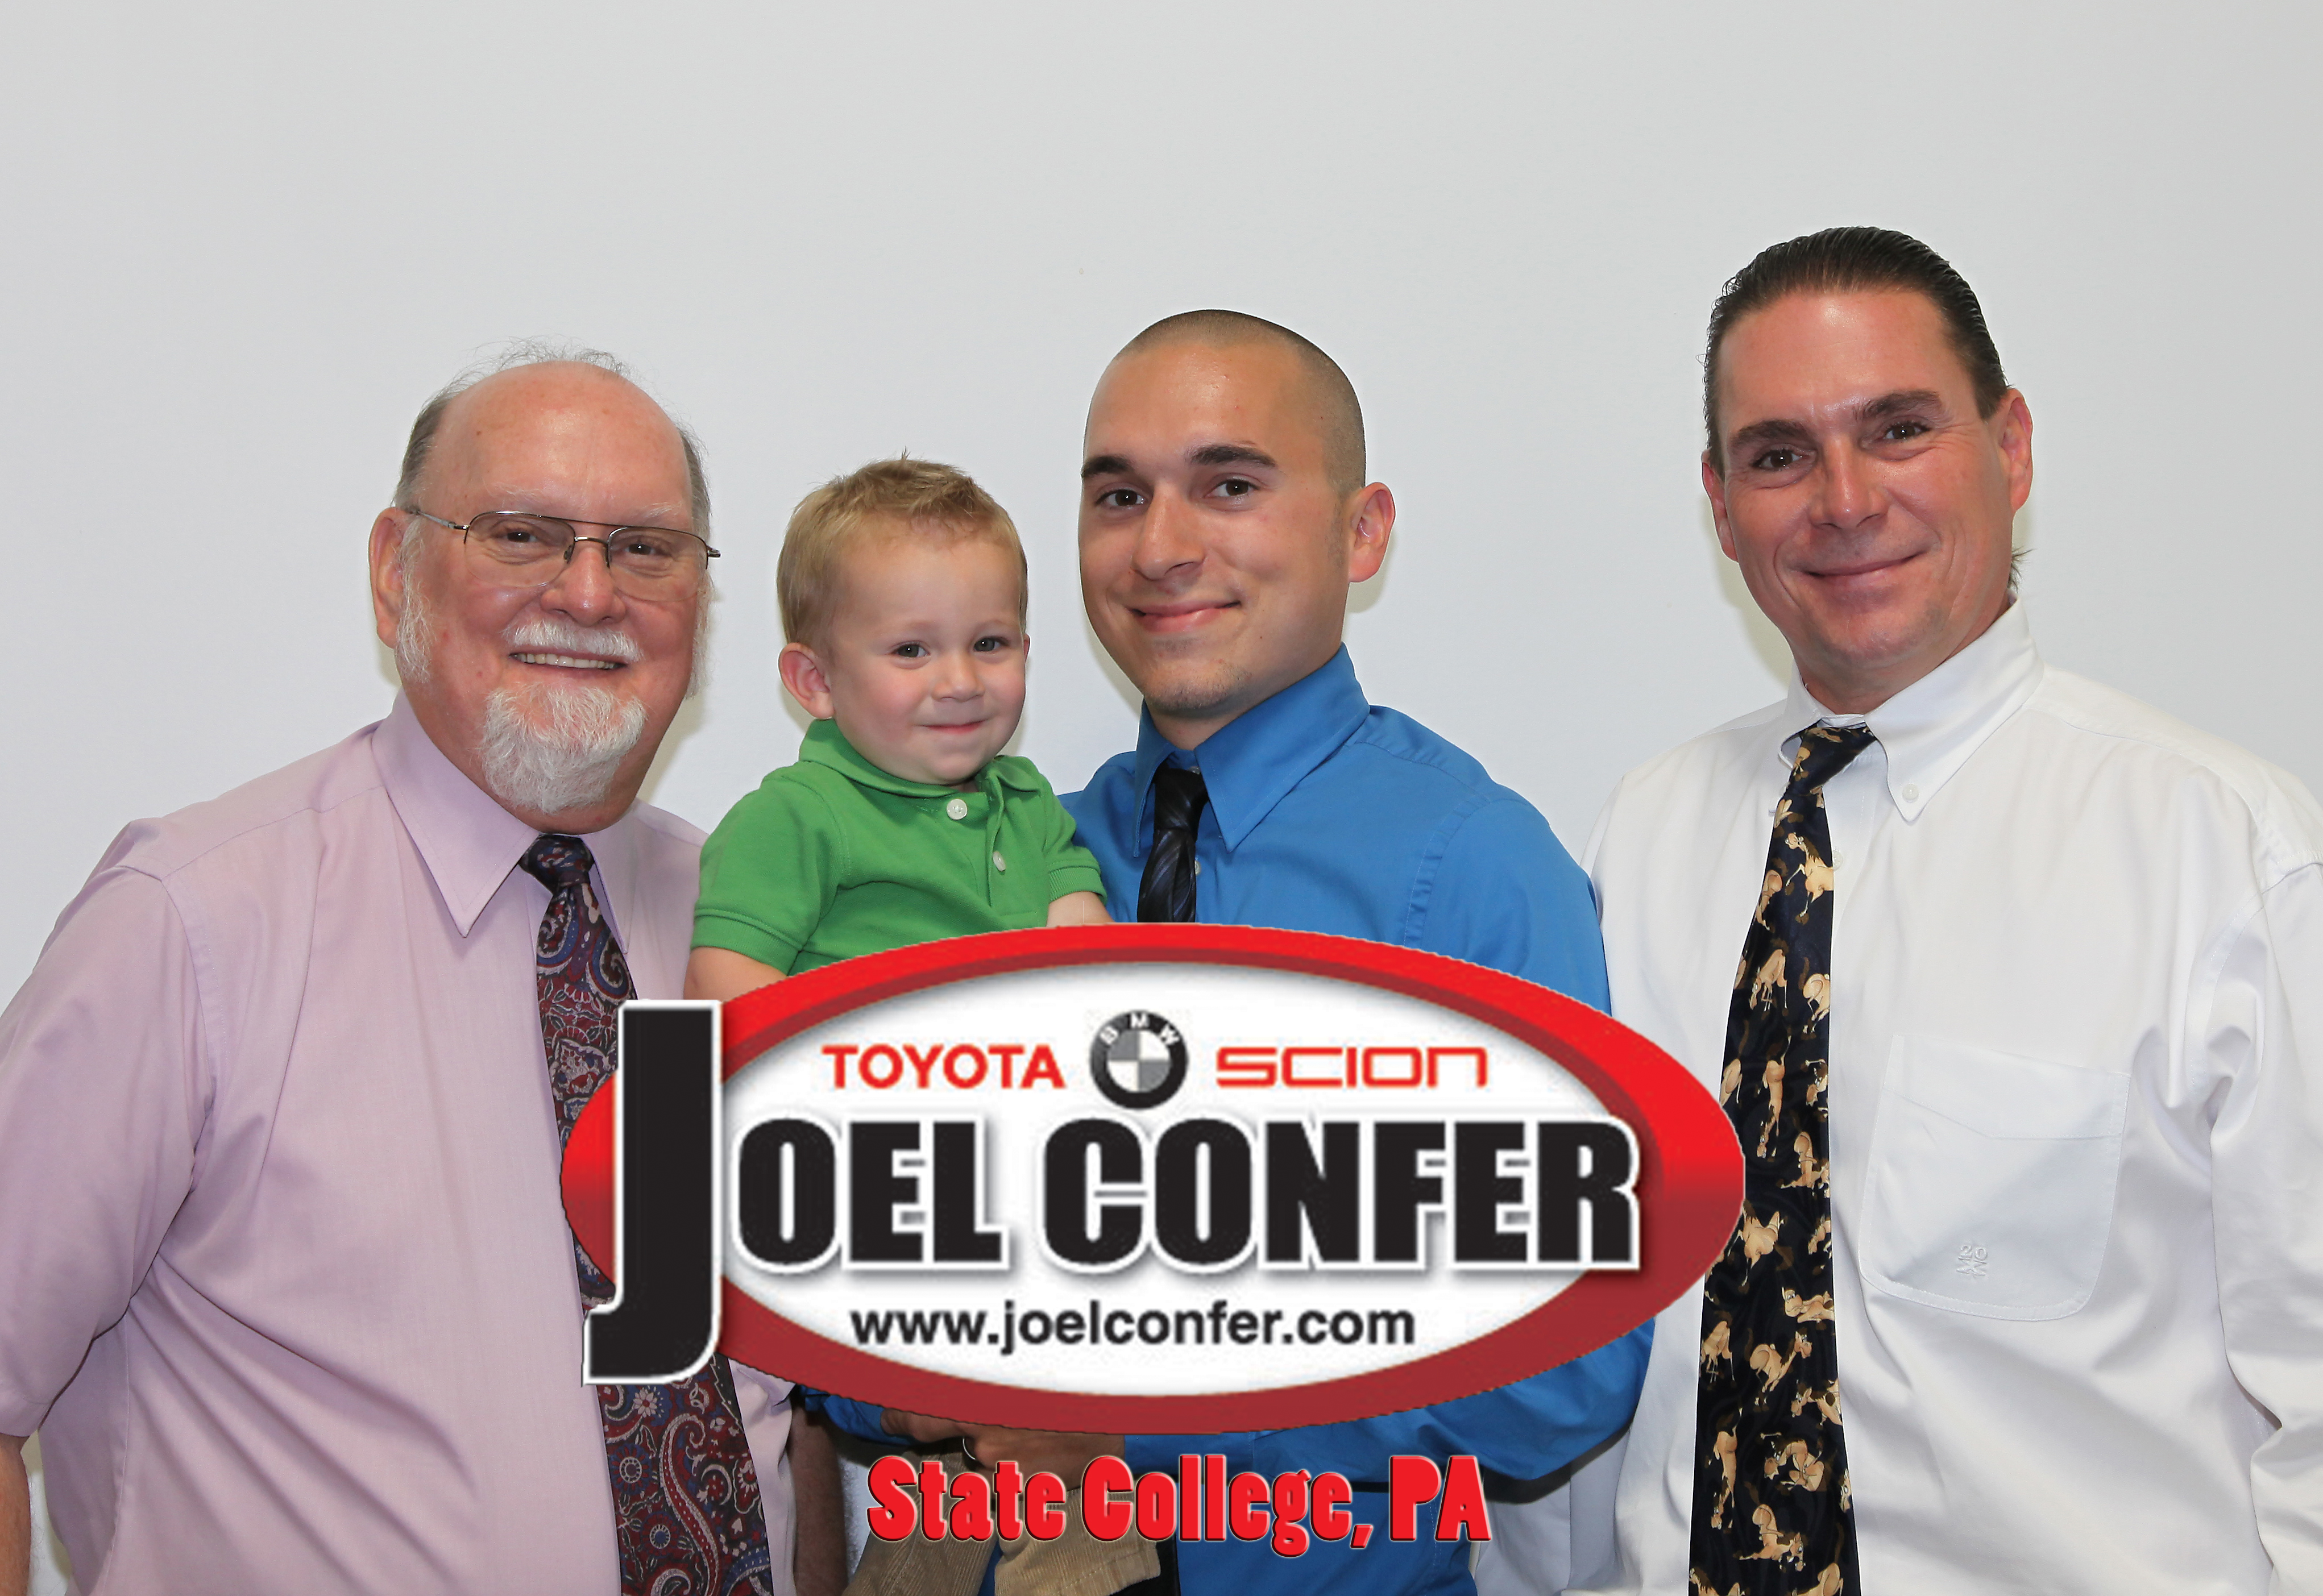 Joel Confer Toyota >> Snow Shoe Rails To Trails Areas Of Interest And Lodging